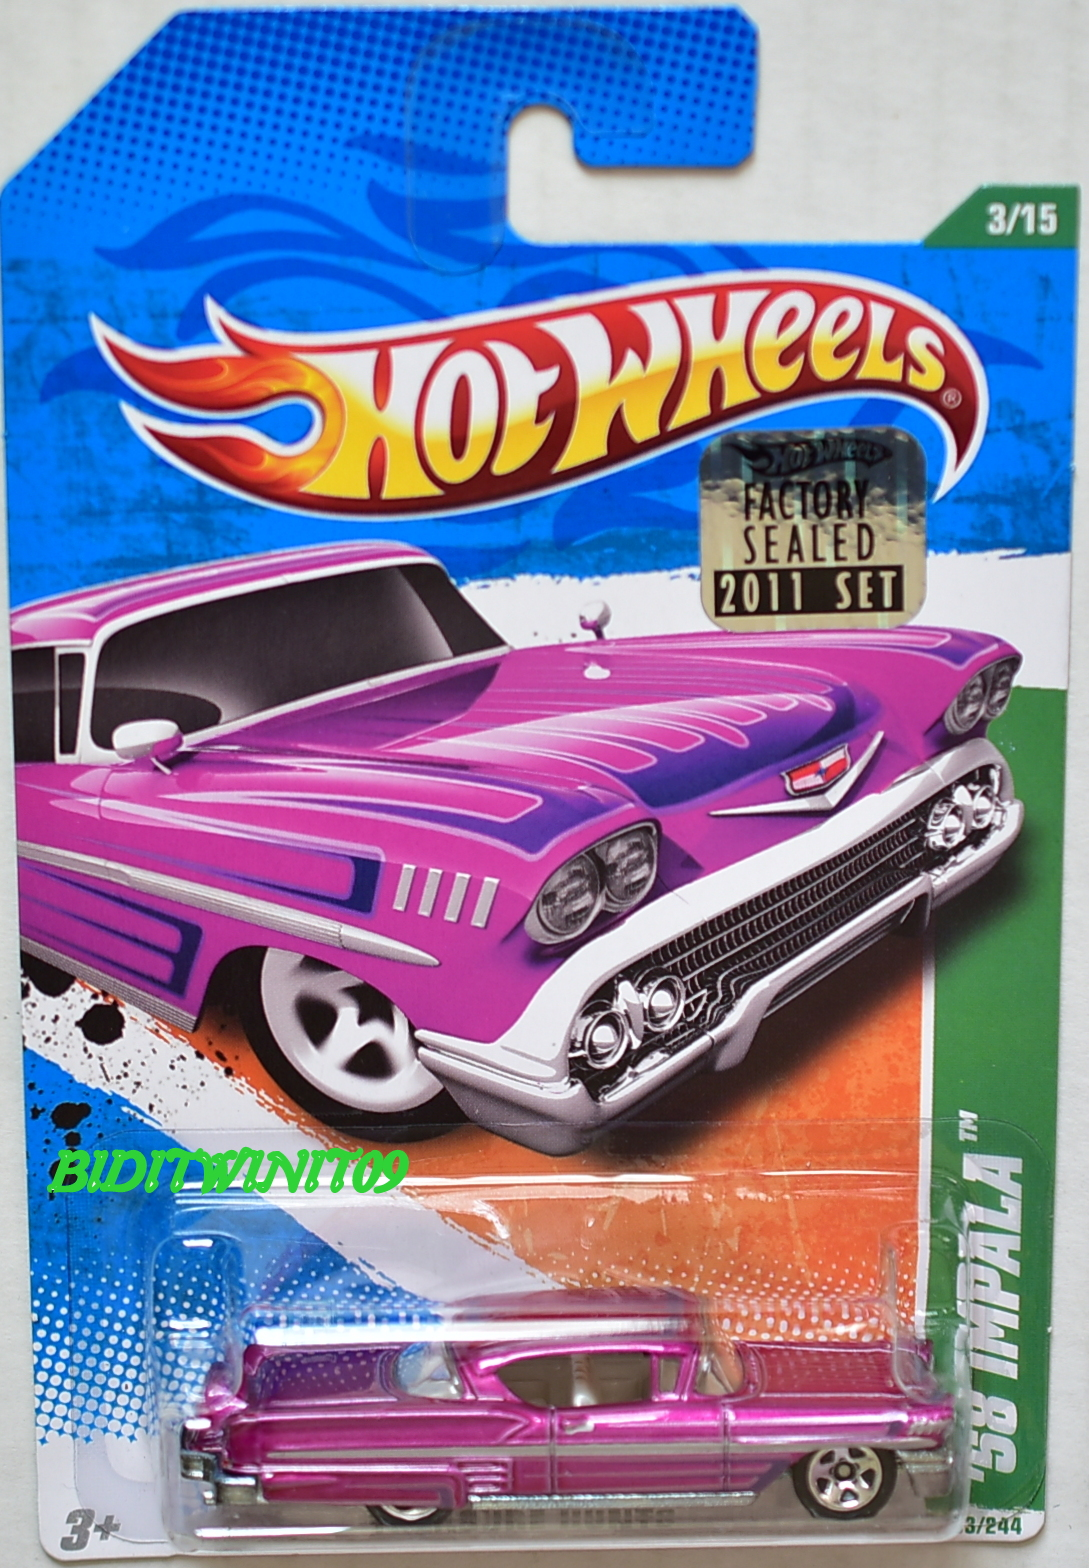 HOT WHEELS 2011 REGULAR TREASURE HUNT '58 IMPALA FACTORY SEALED